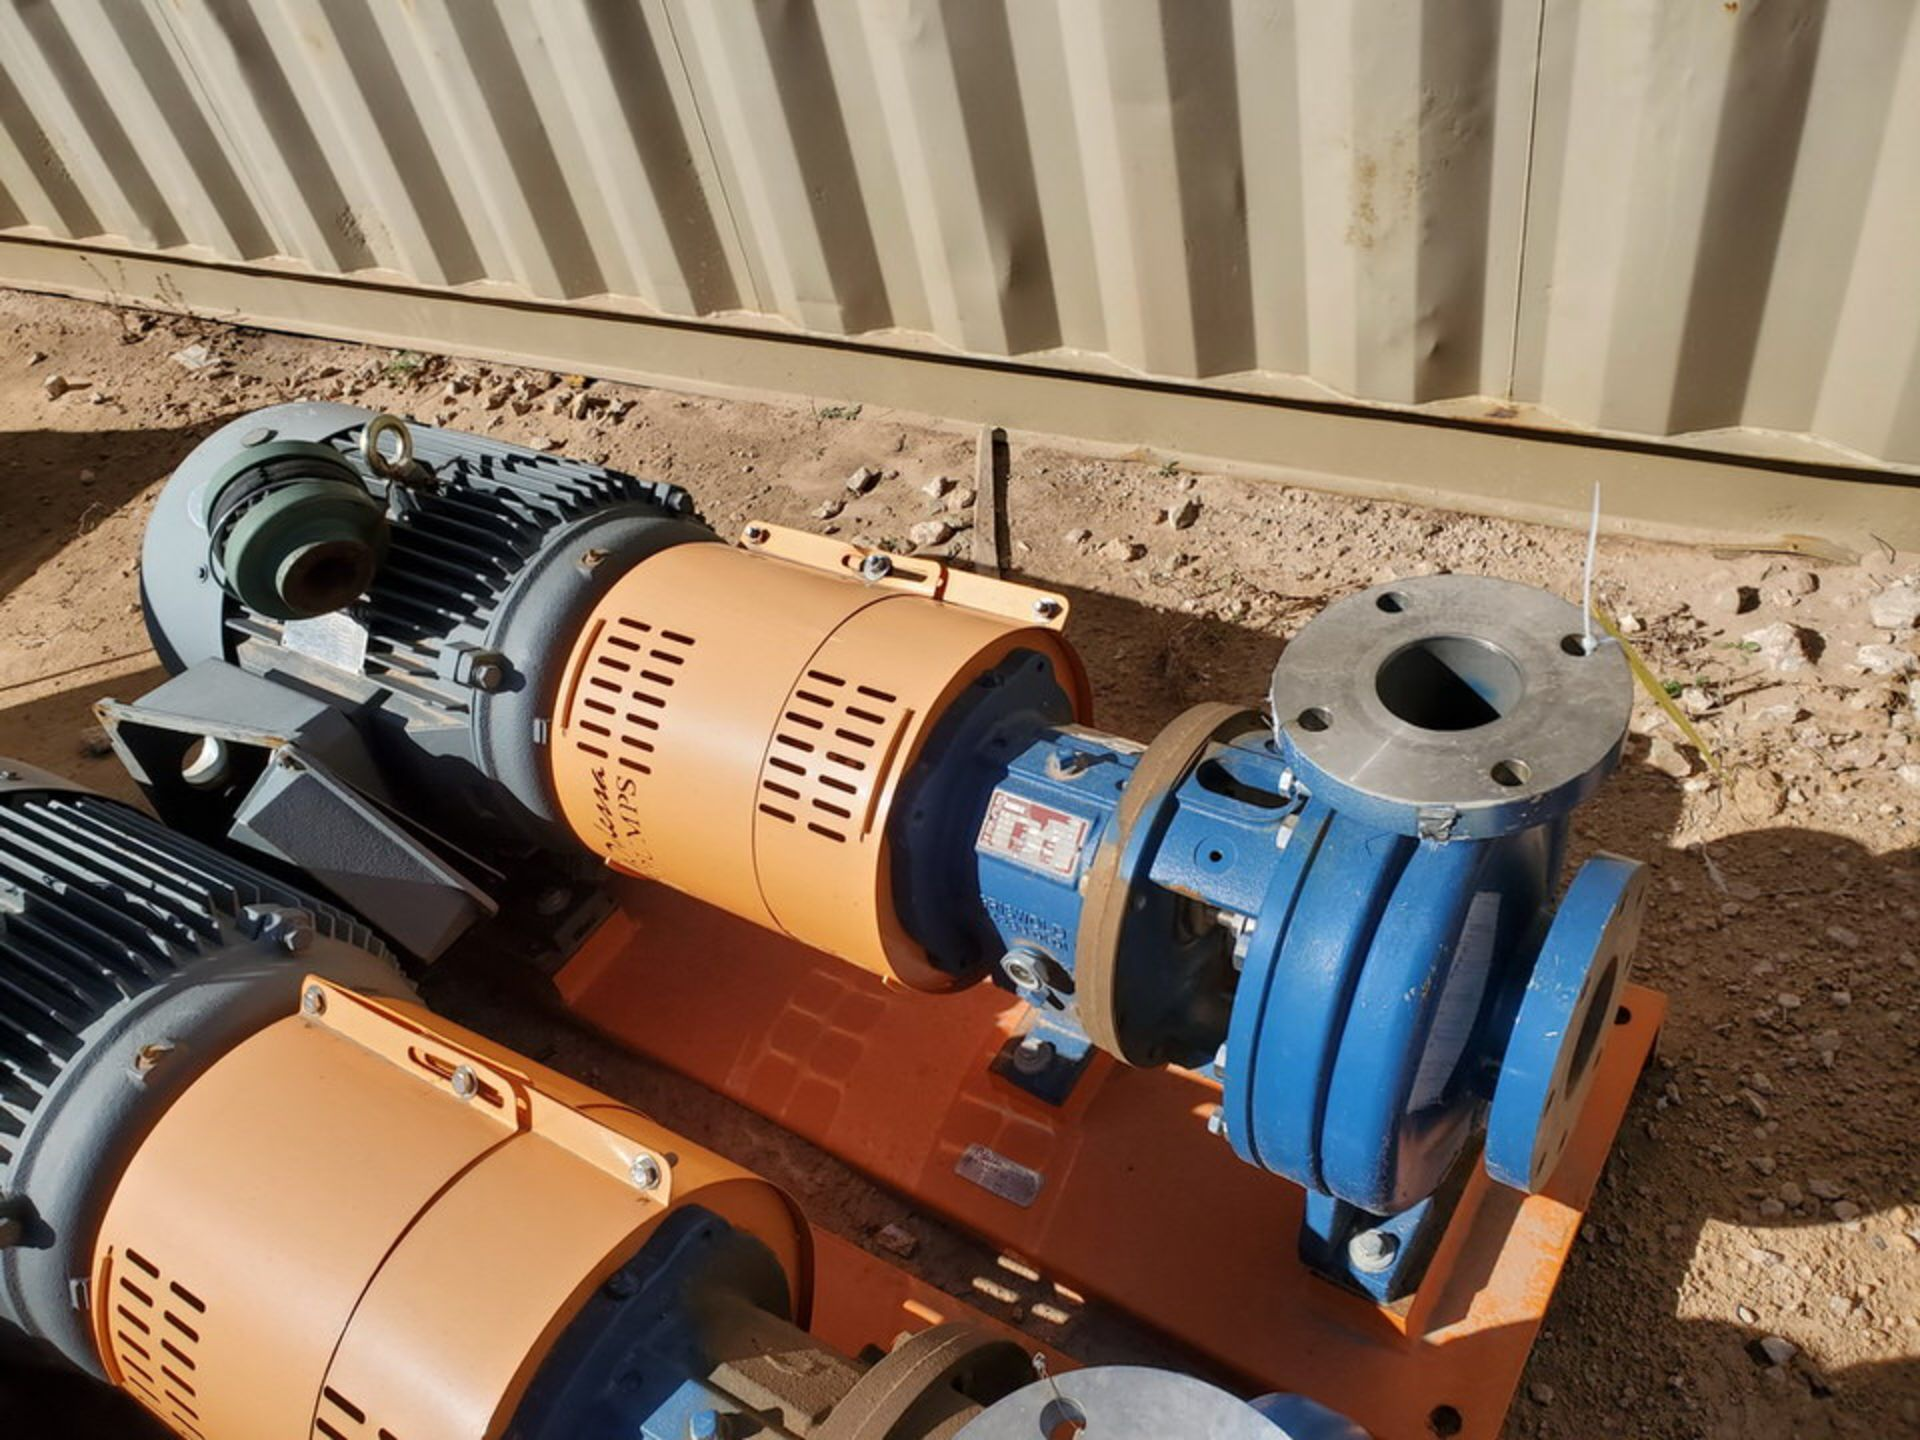 2019 Griswold 811M Centrifugal Pump Size: 4 x 3-10, 7.83 Imp Dia; W/ 50HP Motor - Image 2 of 8